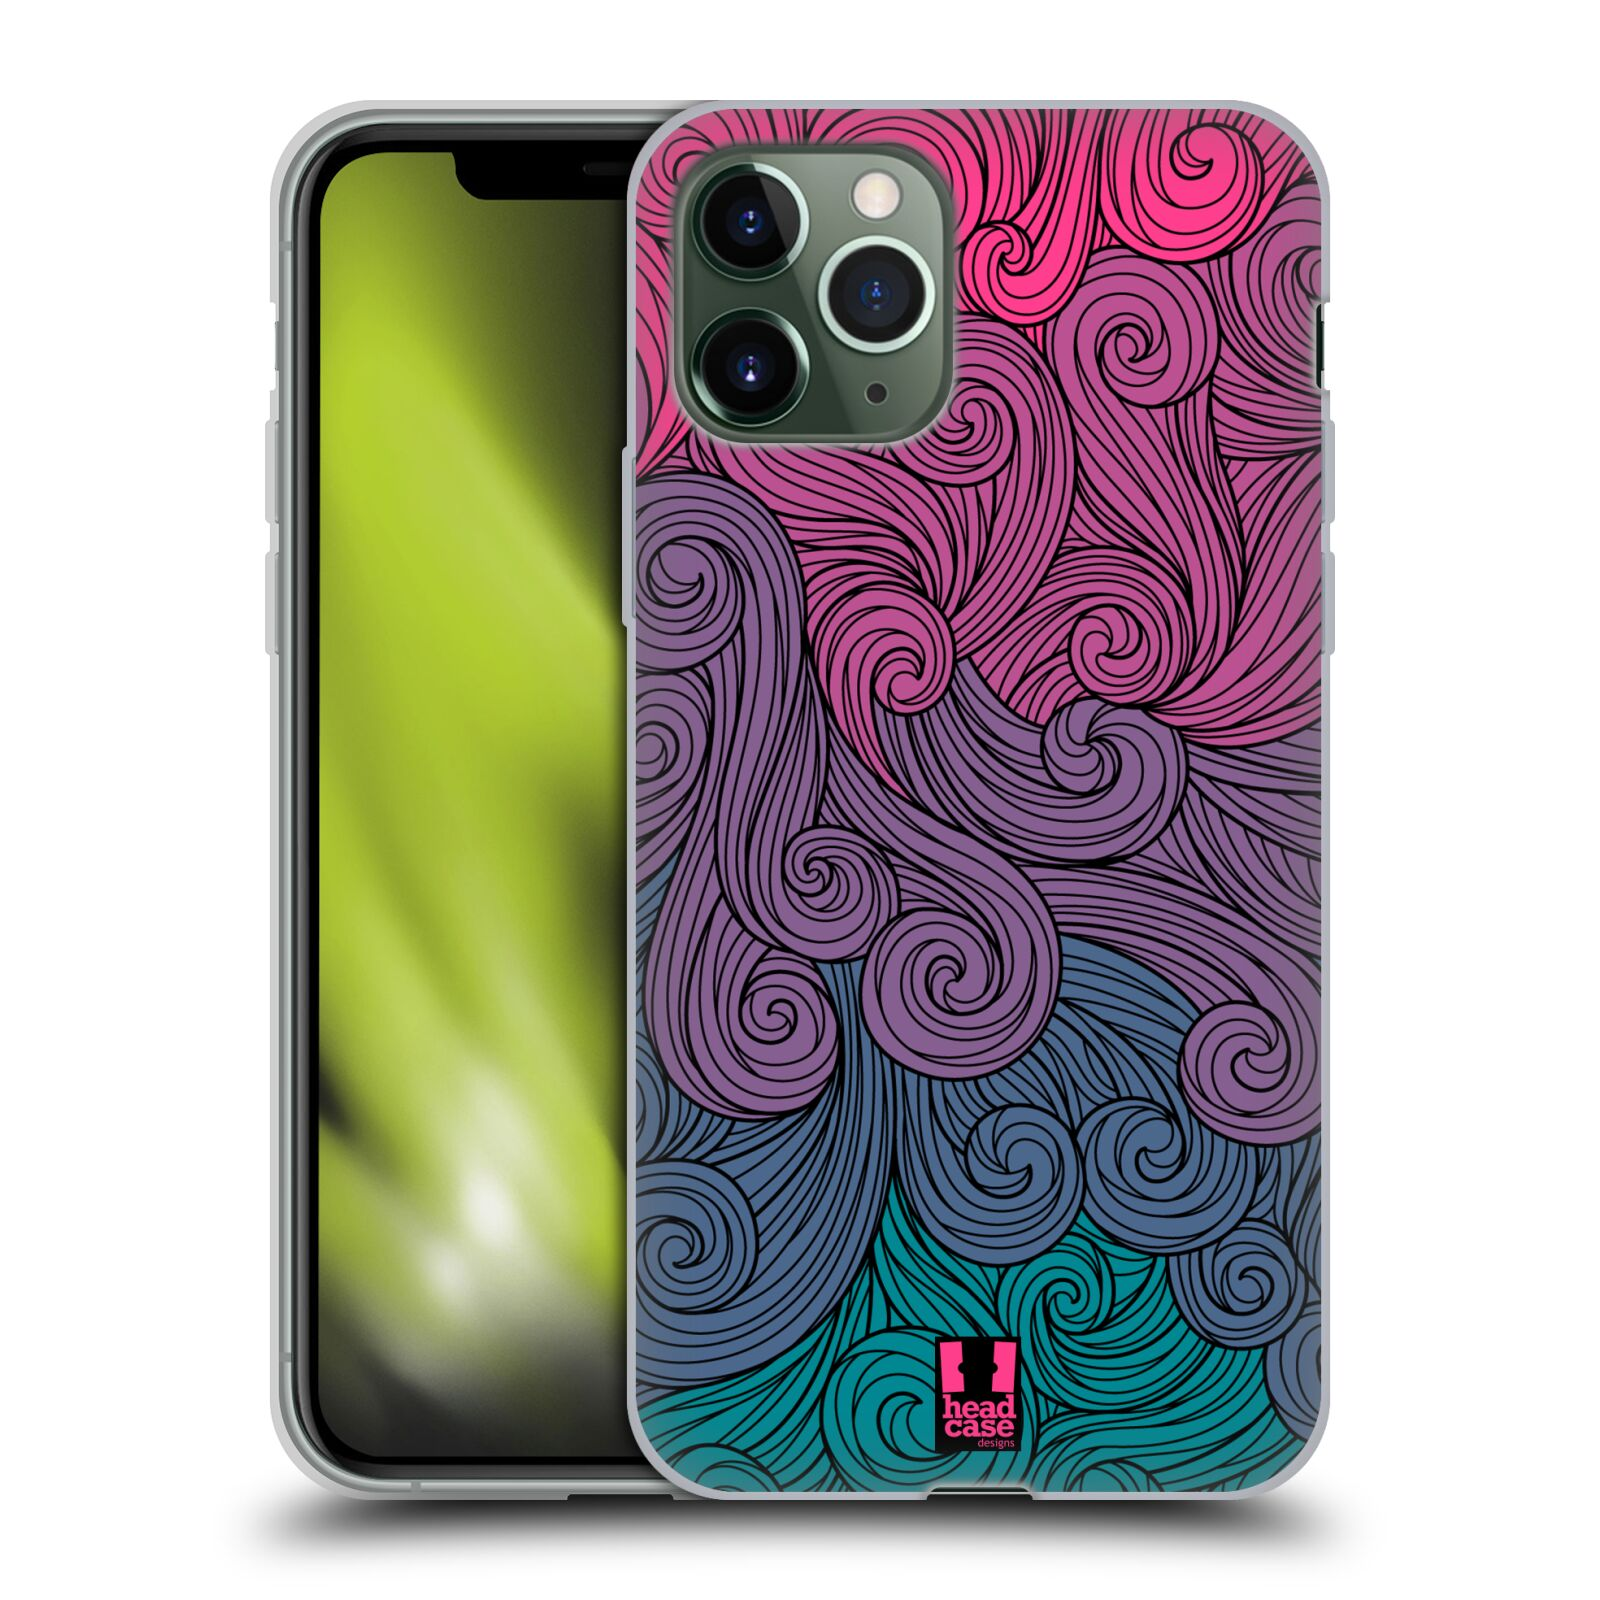 vodotesny obal iphone 6 plus | Silikonové pouzdro na mobil Apple iPhone 11 Pro - Head Case - Swirls Hot Pink